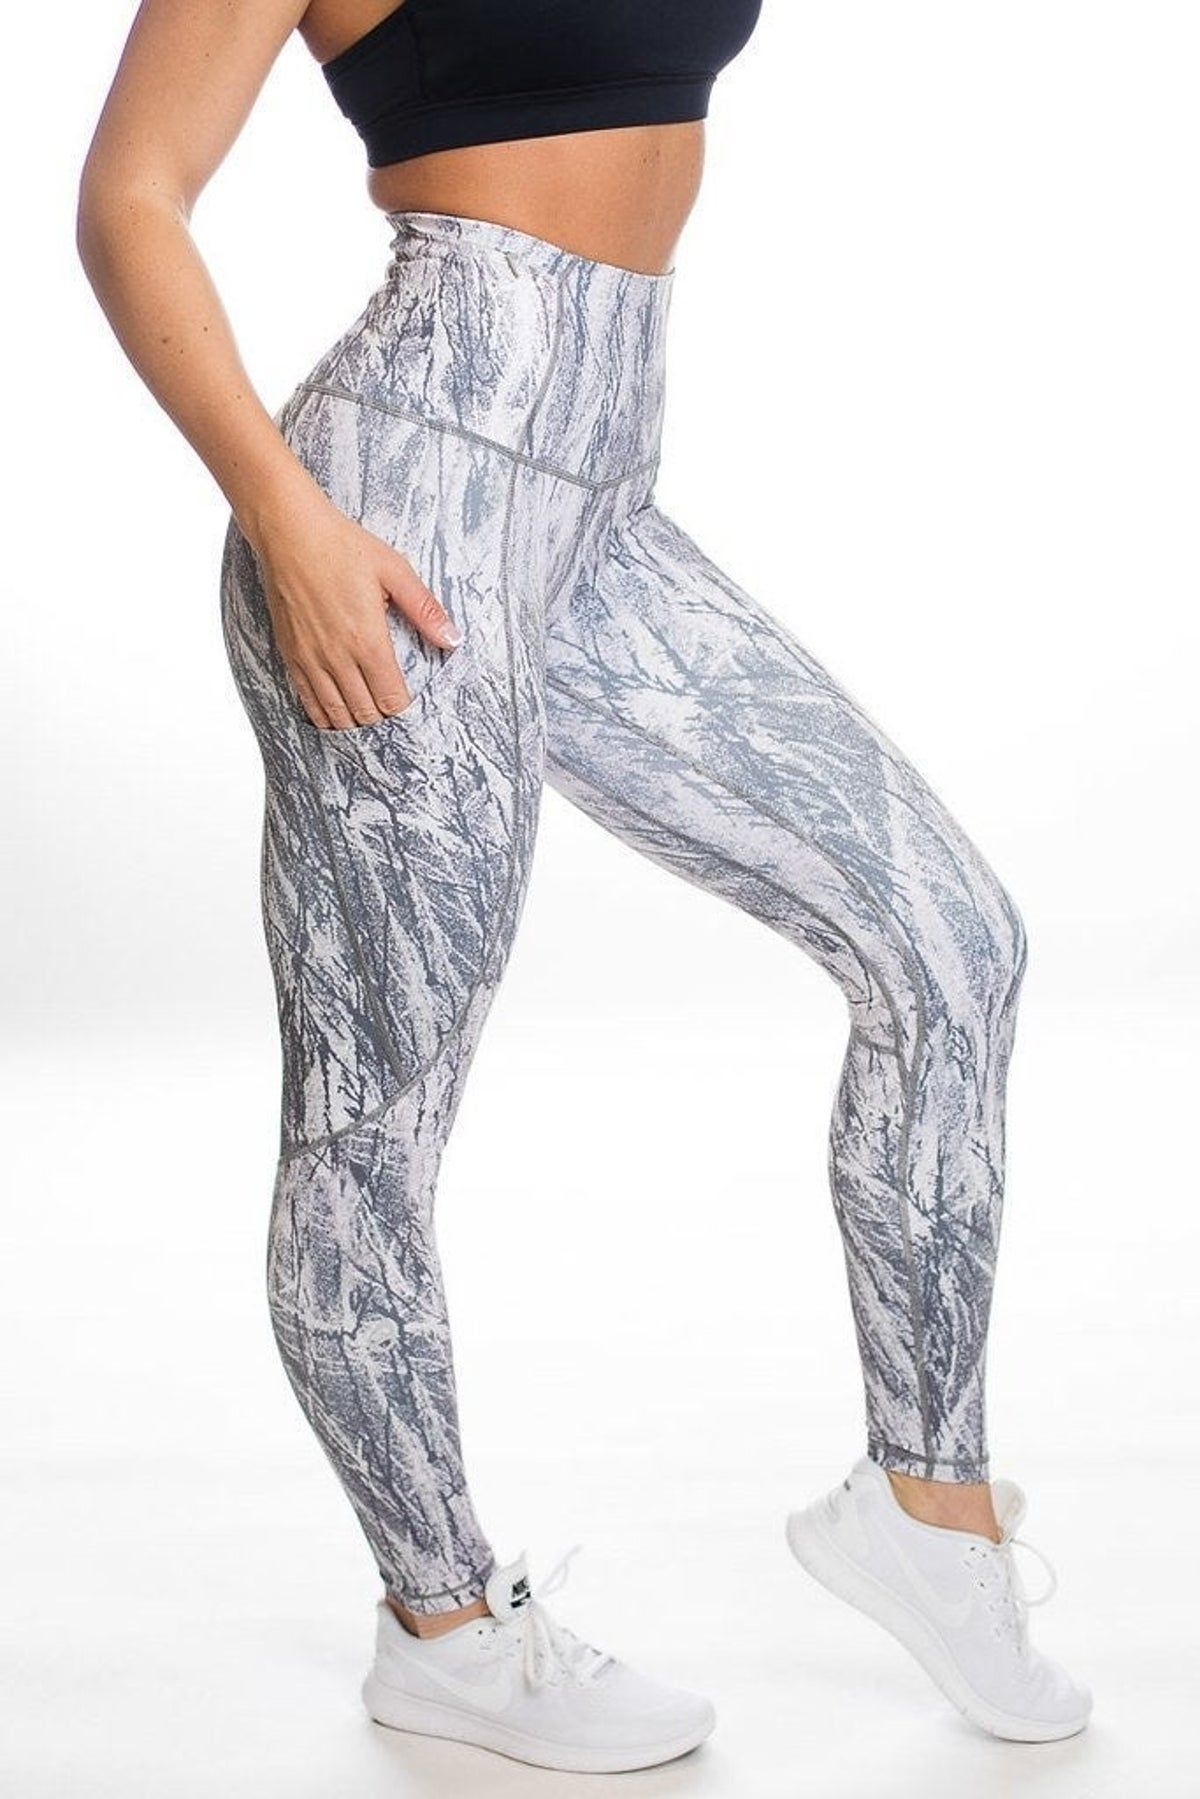 Pin By Blueforeverblue On Diy In 2020 Legging Clothes Cool Outfits Thanks so much for watching! pinterest